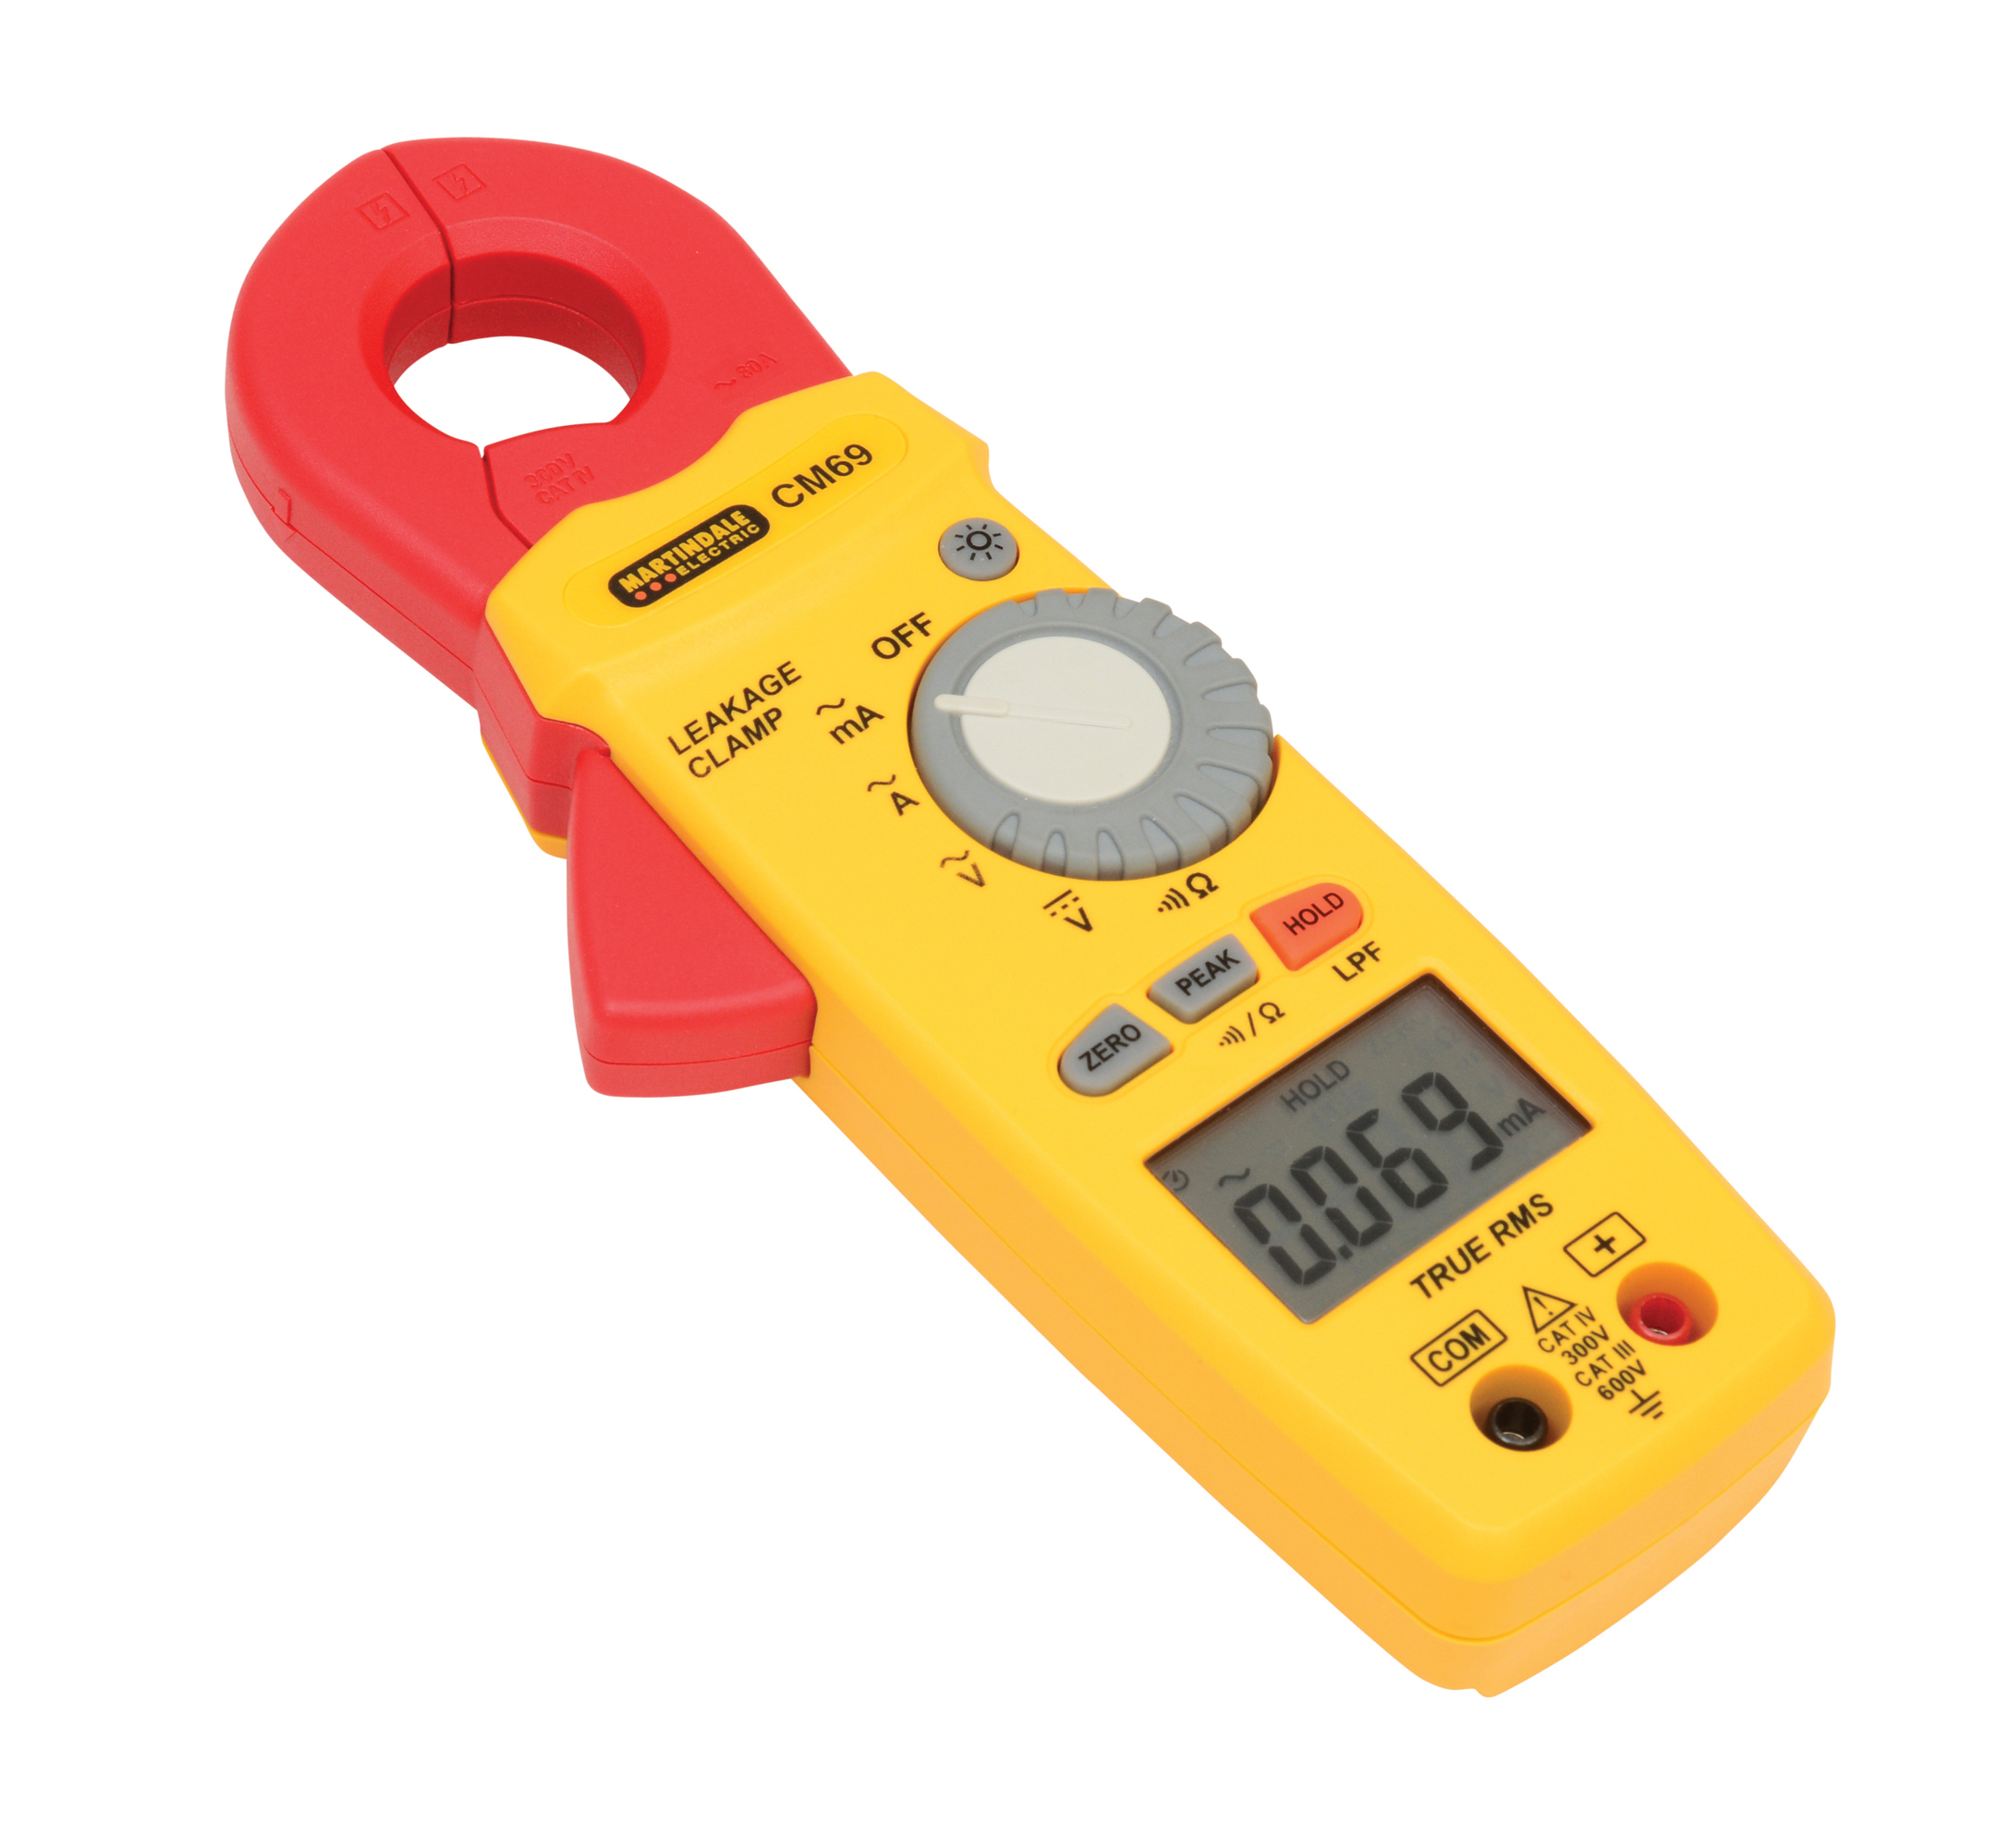 cm69 ac trms earth leakage clamp meter